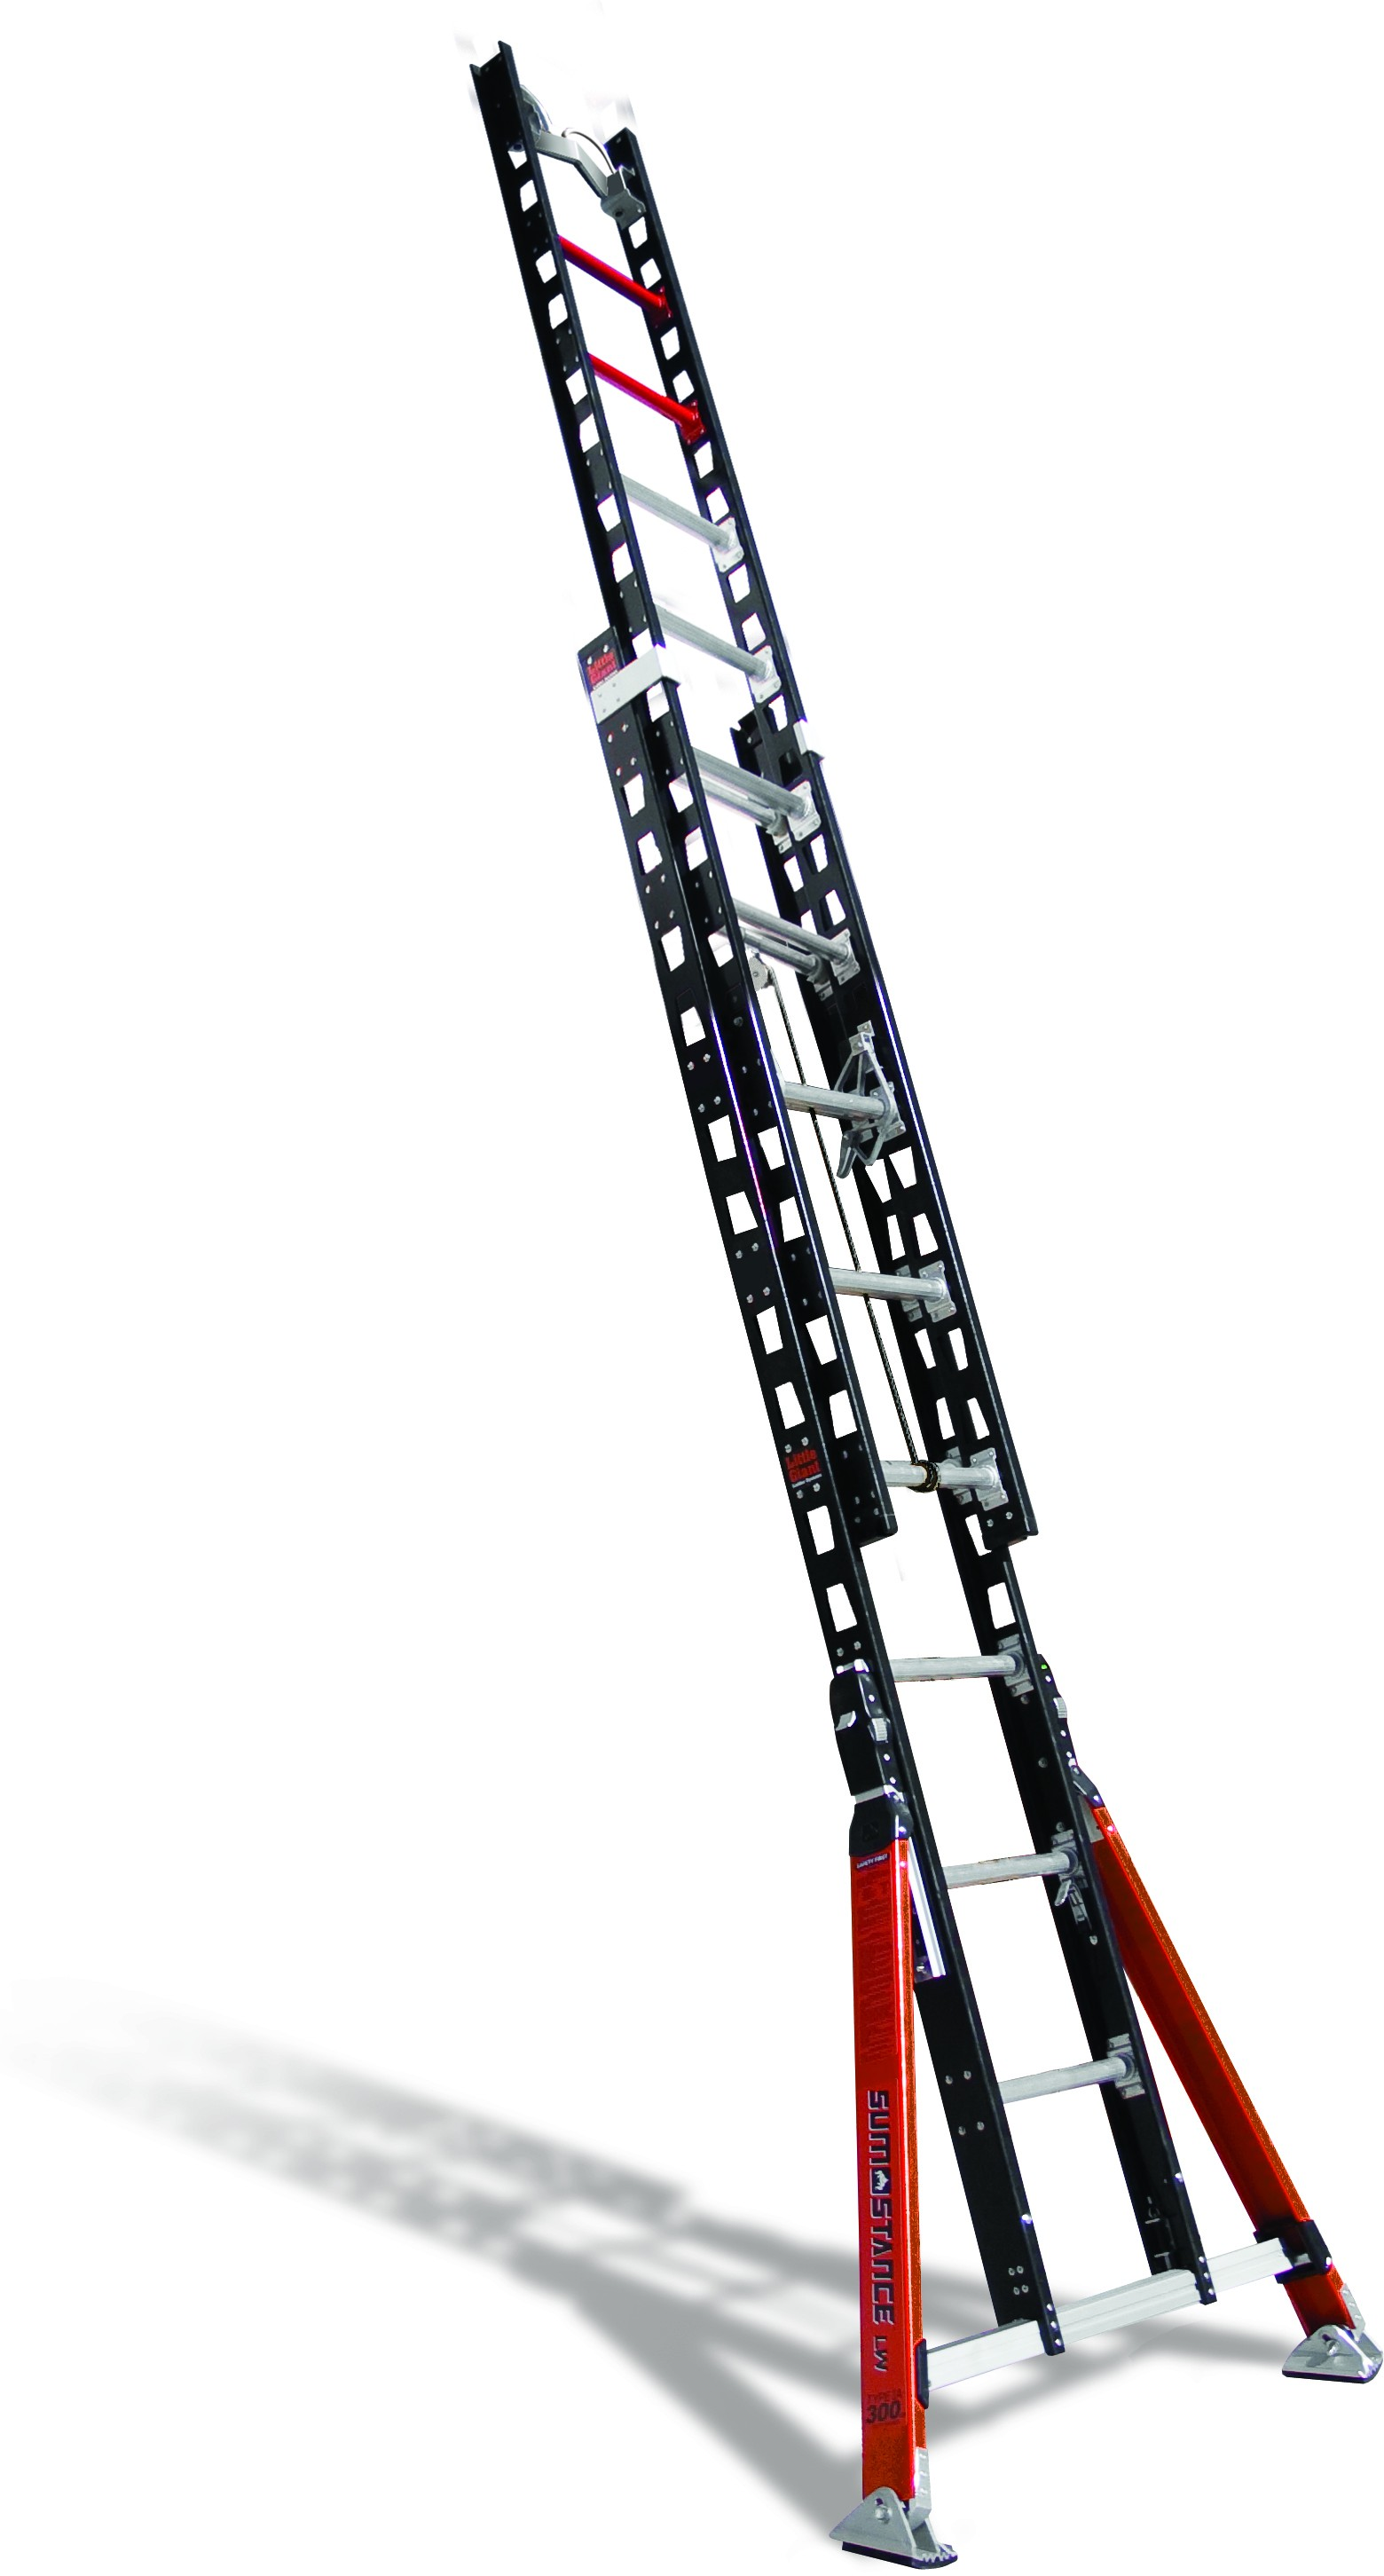 20 Foot Extension Ladder : Calico ladders little giant sumostance ft f g